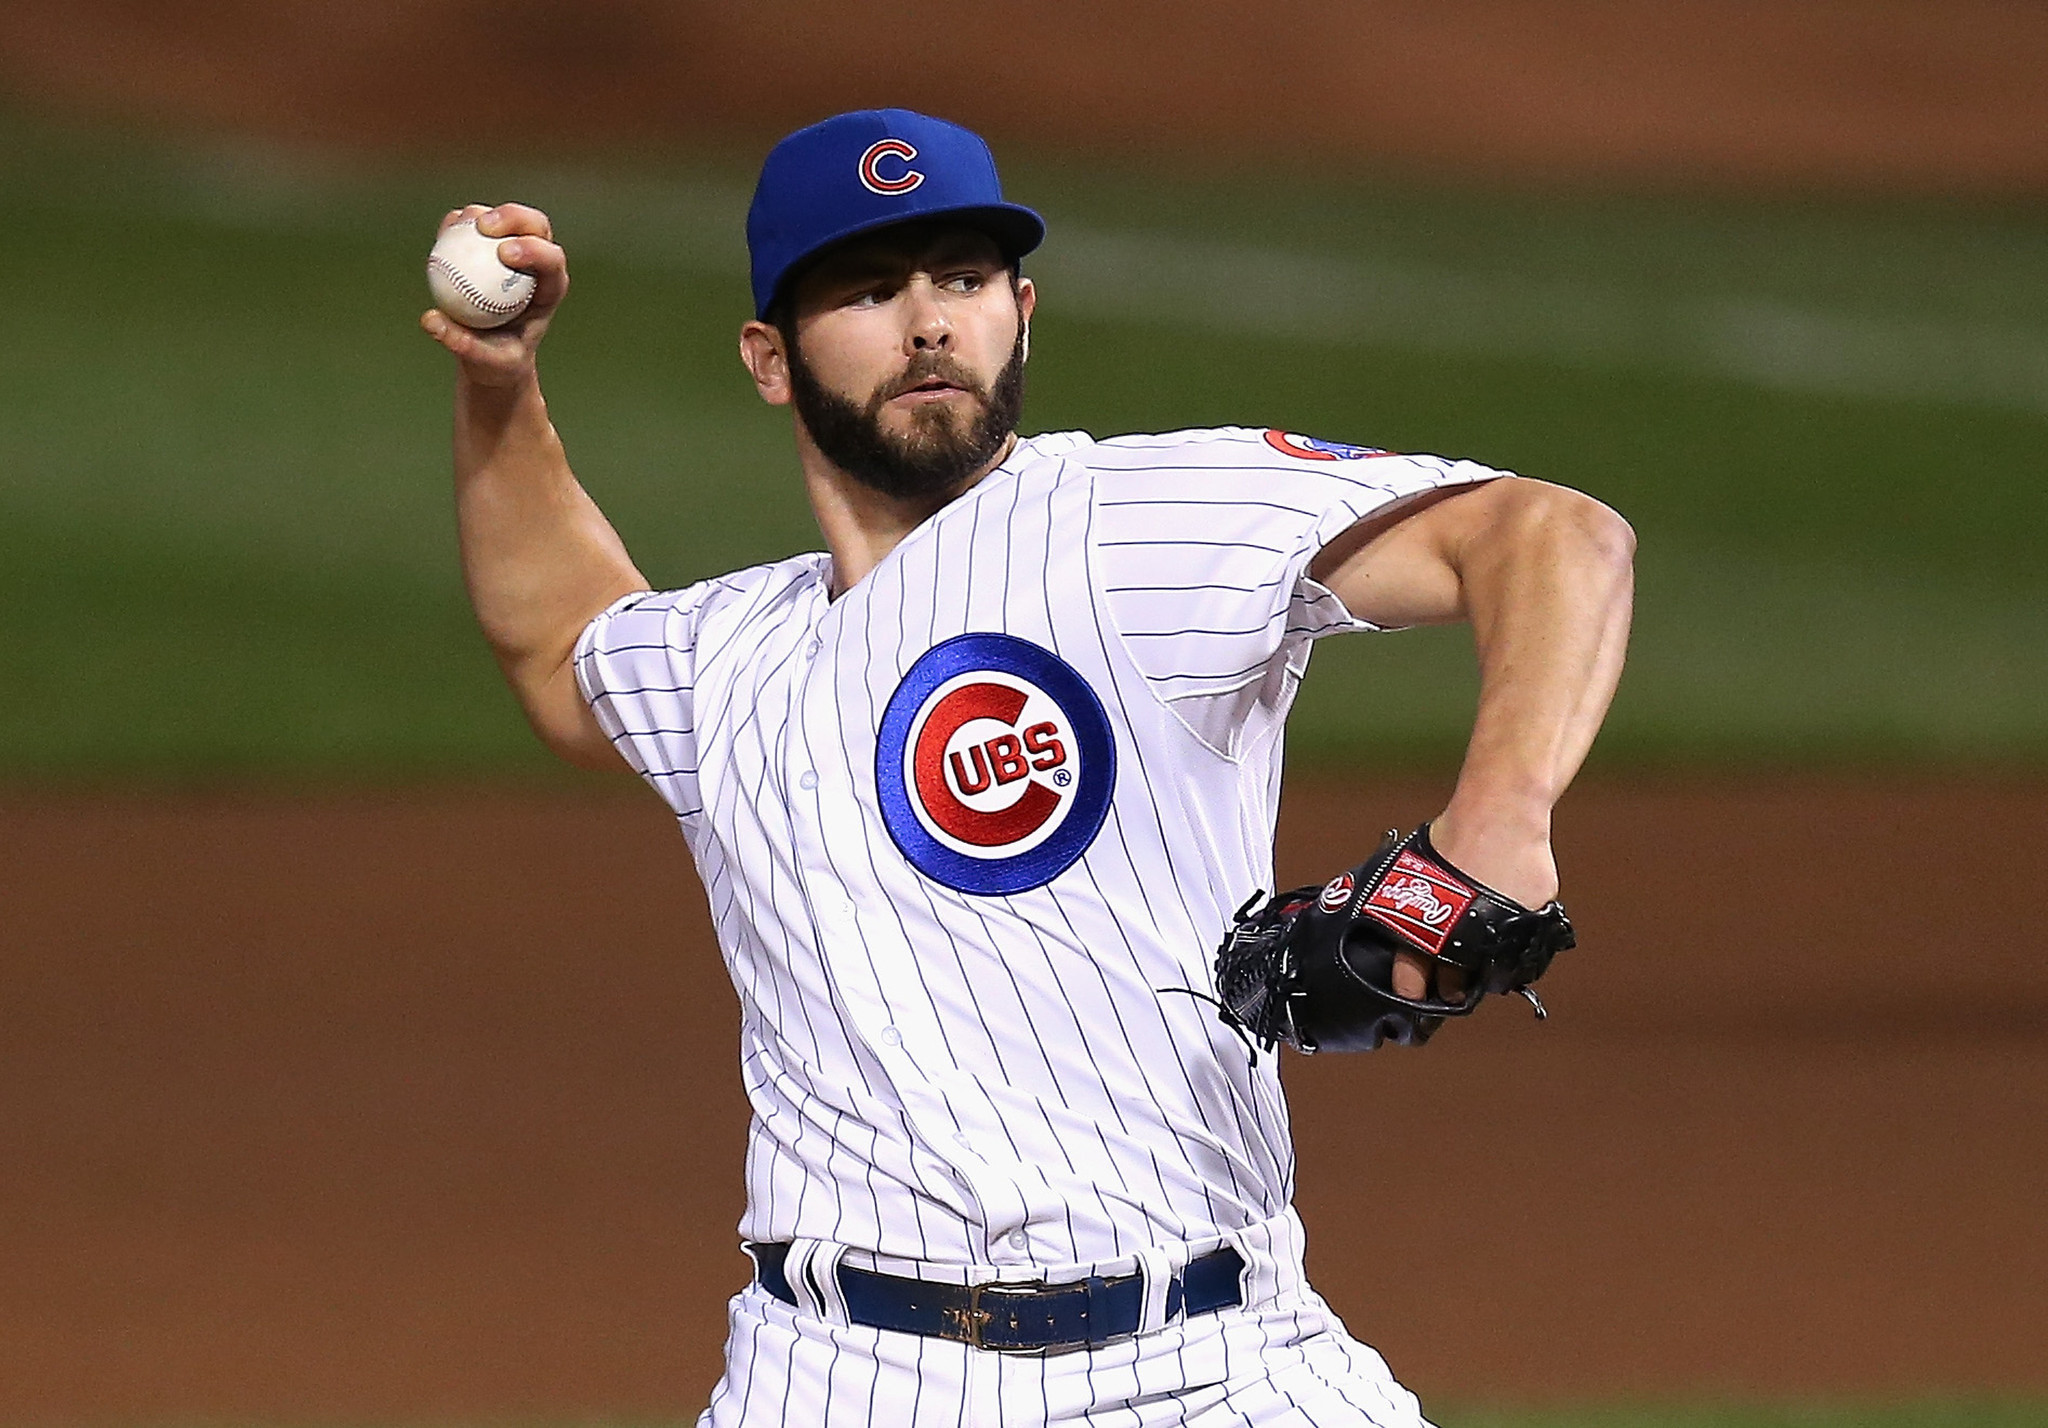 Bal-jake-arrieta-plans-to-enjoy-his-first-trip-back-to-camden-yards-since-trade-20170714